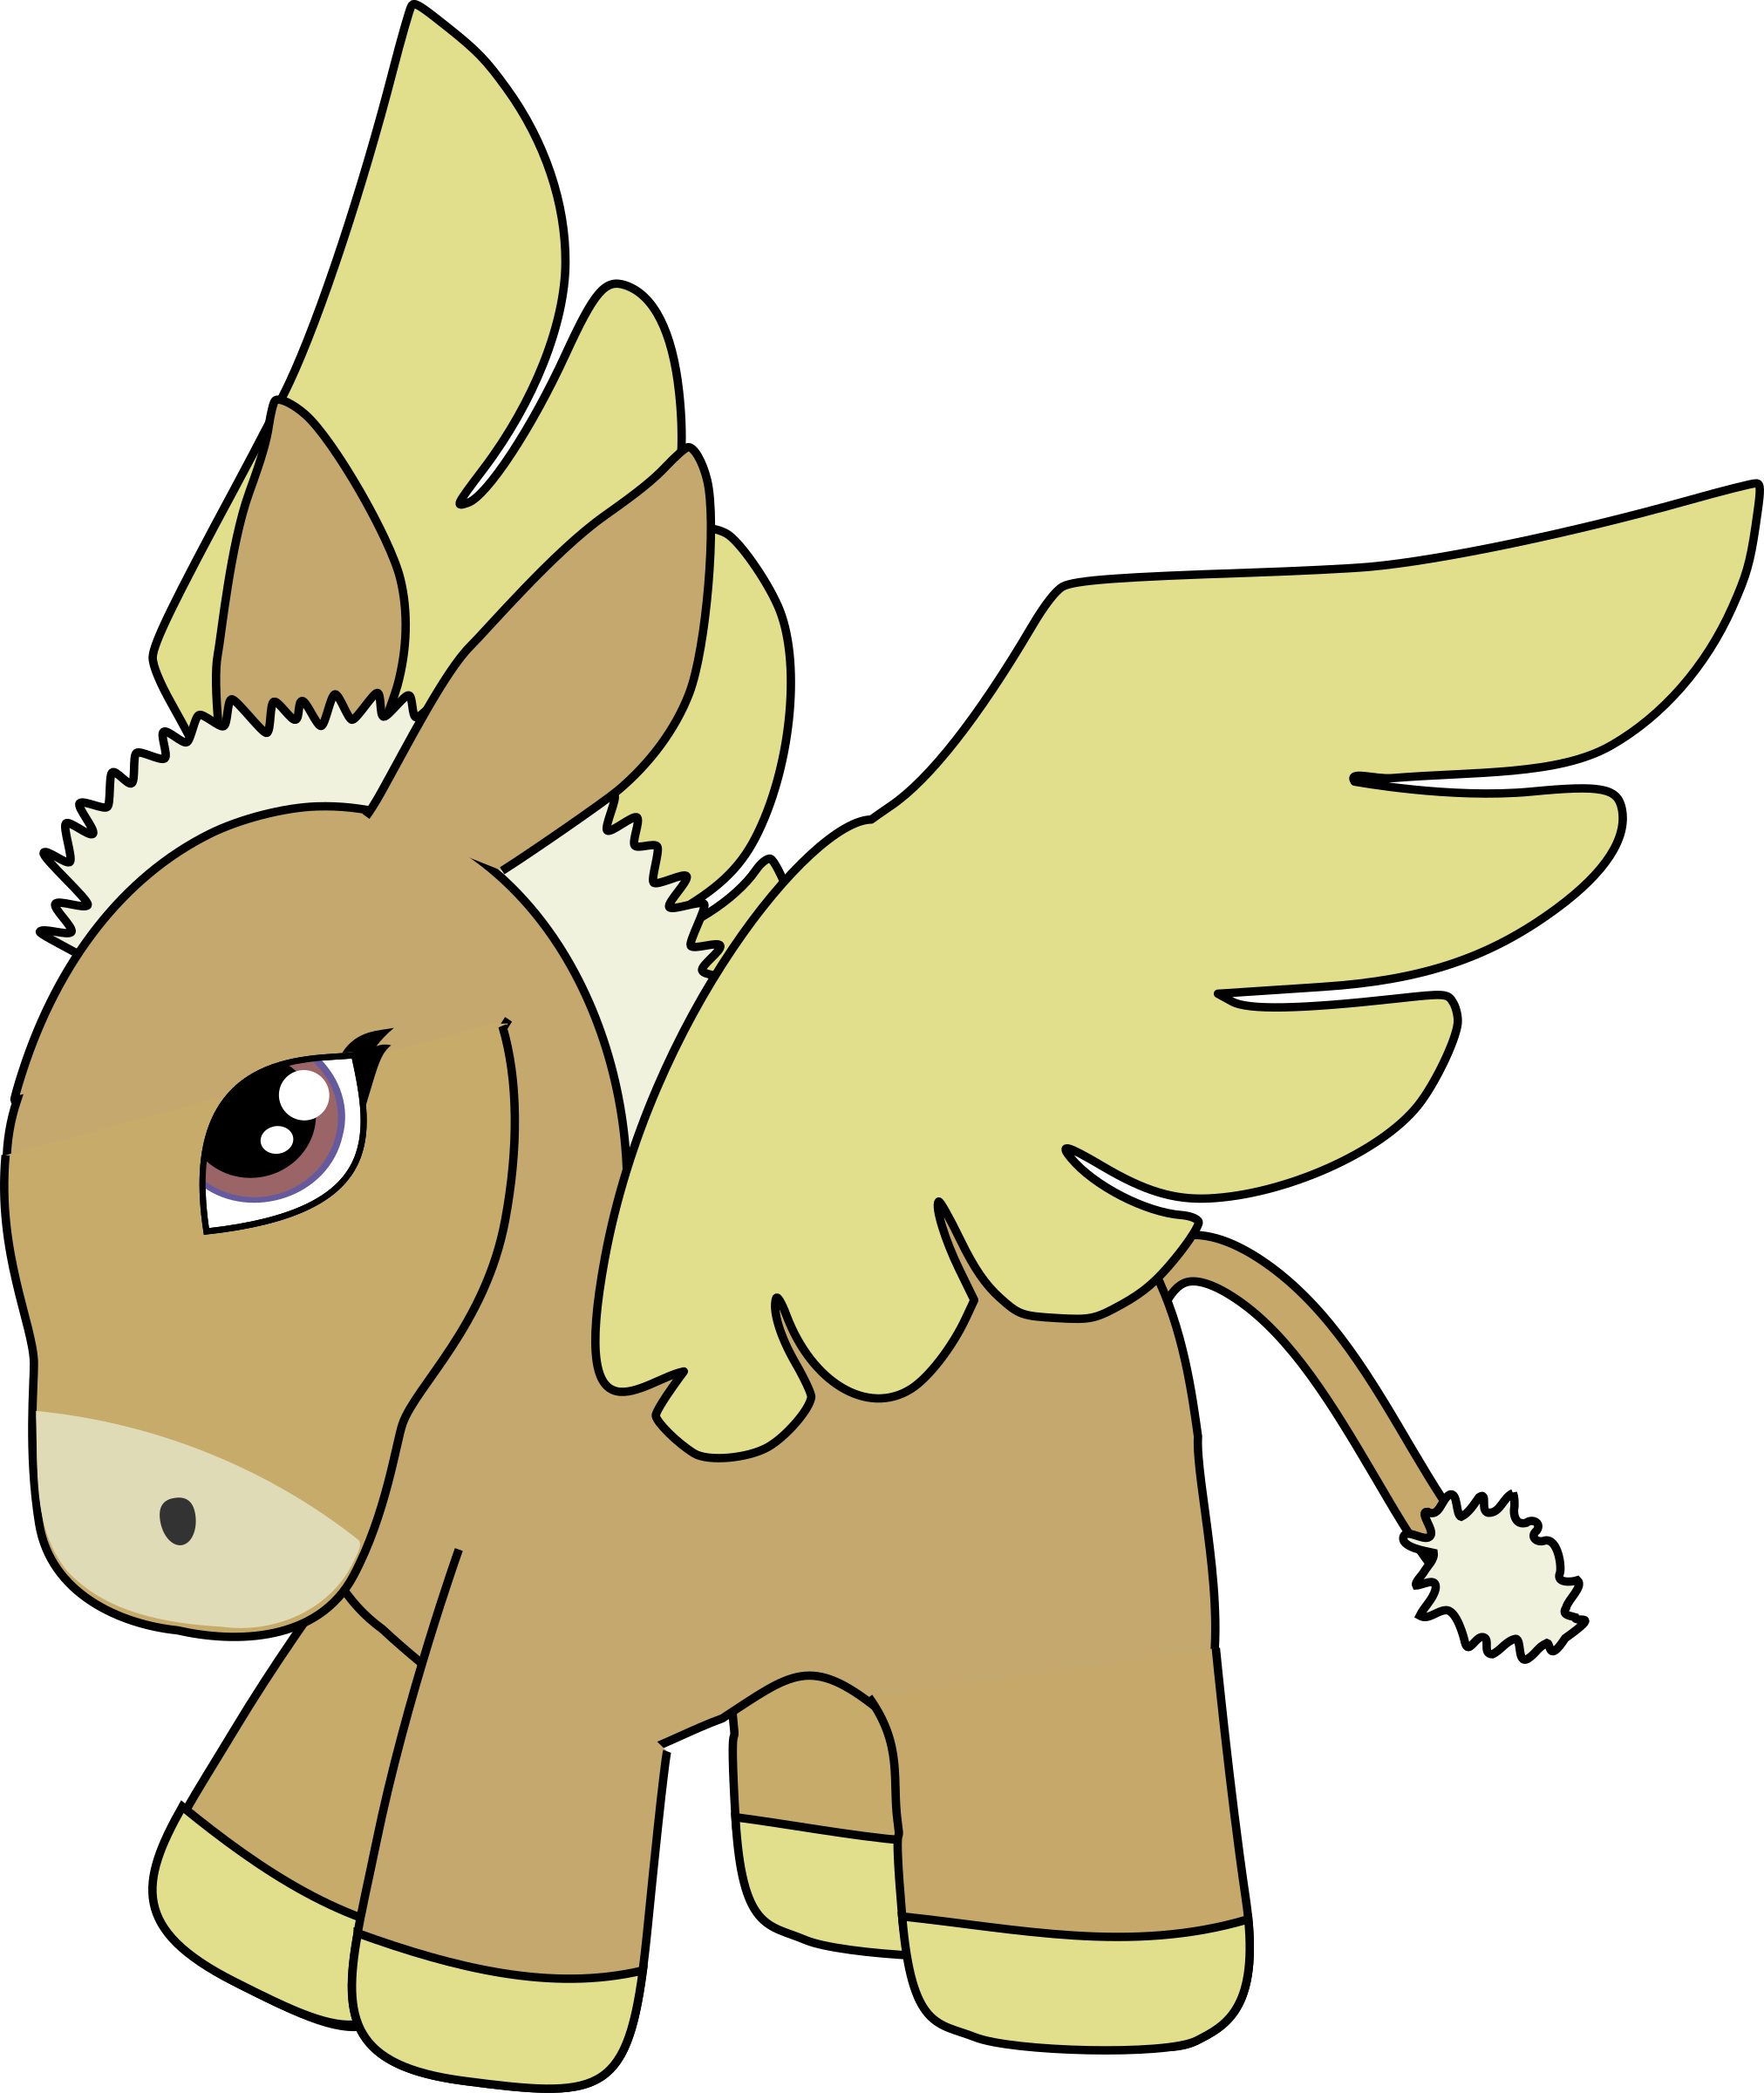 Brown and gold donkey pegasus by anarres